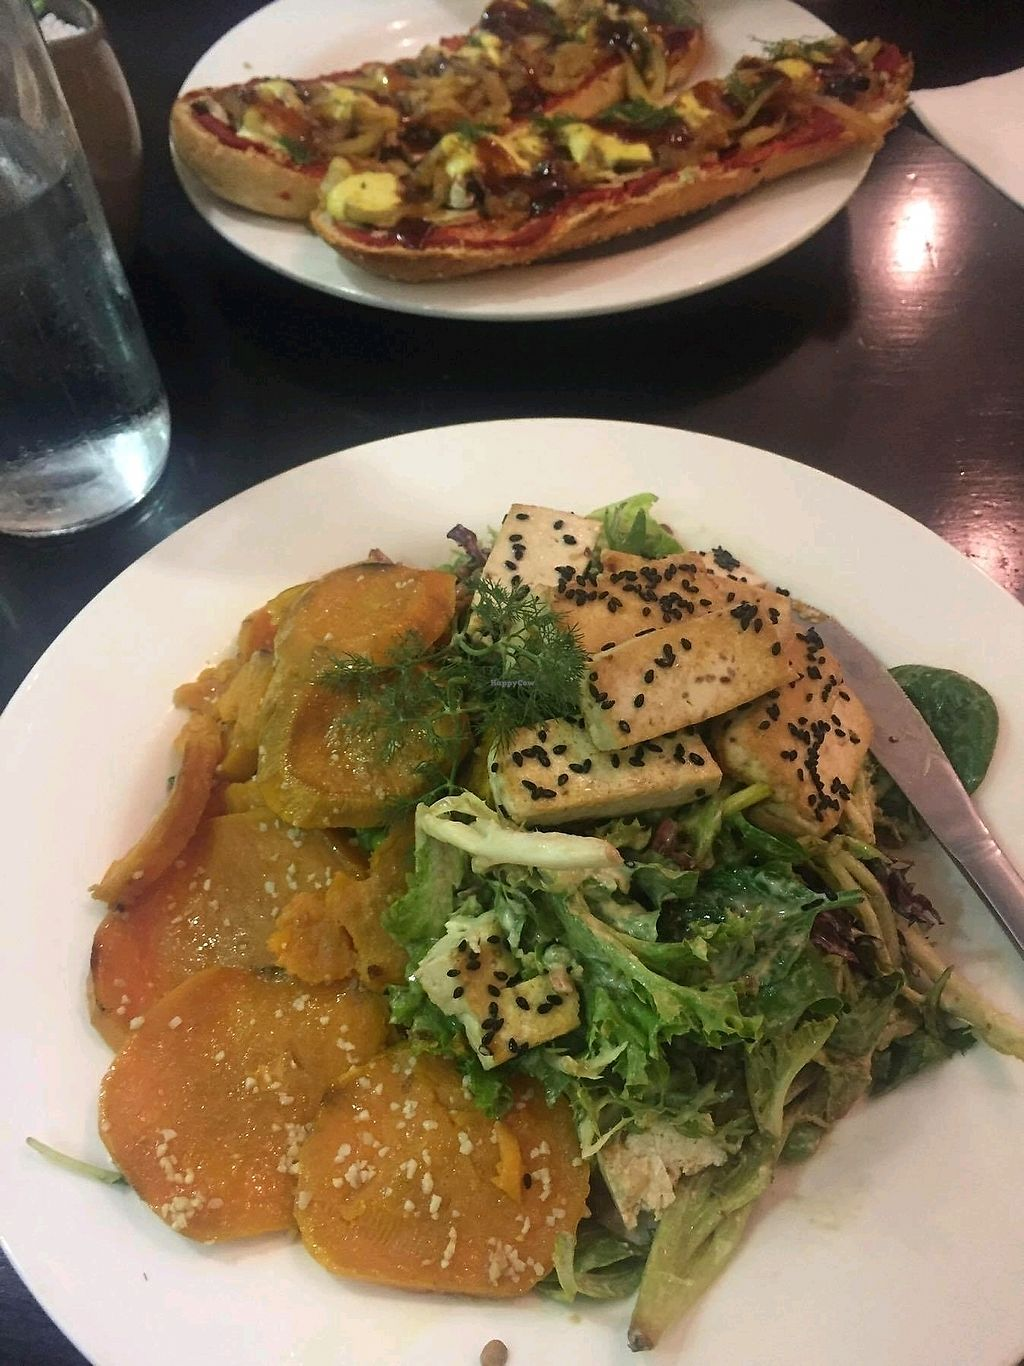 "Photo of Orchid Vegetarian Cafe  by <a href=""/members/profile/SeanCarlyon"">SeanCarlyon</a> <br/>delicious vegan salad and vegan pizza subs! awesome flavour!  <br/> October 10, 2017  - <a href='/contact/abuse/image/101246/313838'>Report</a>"